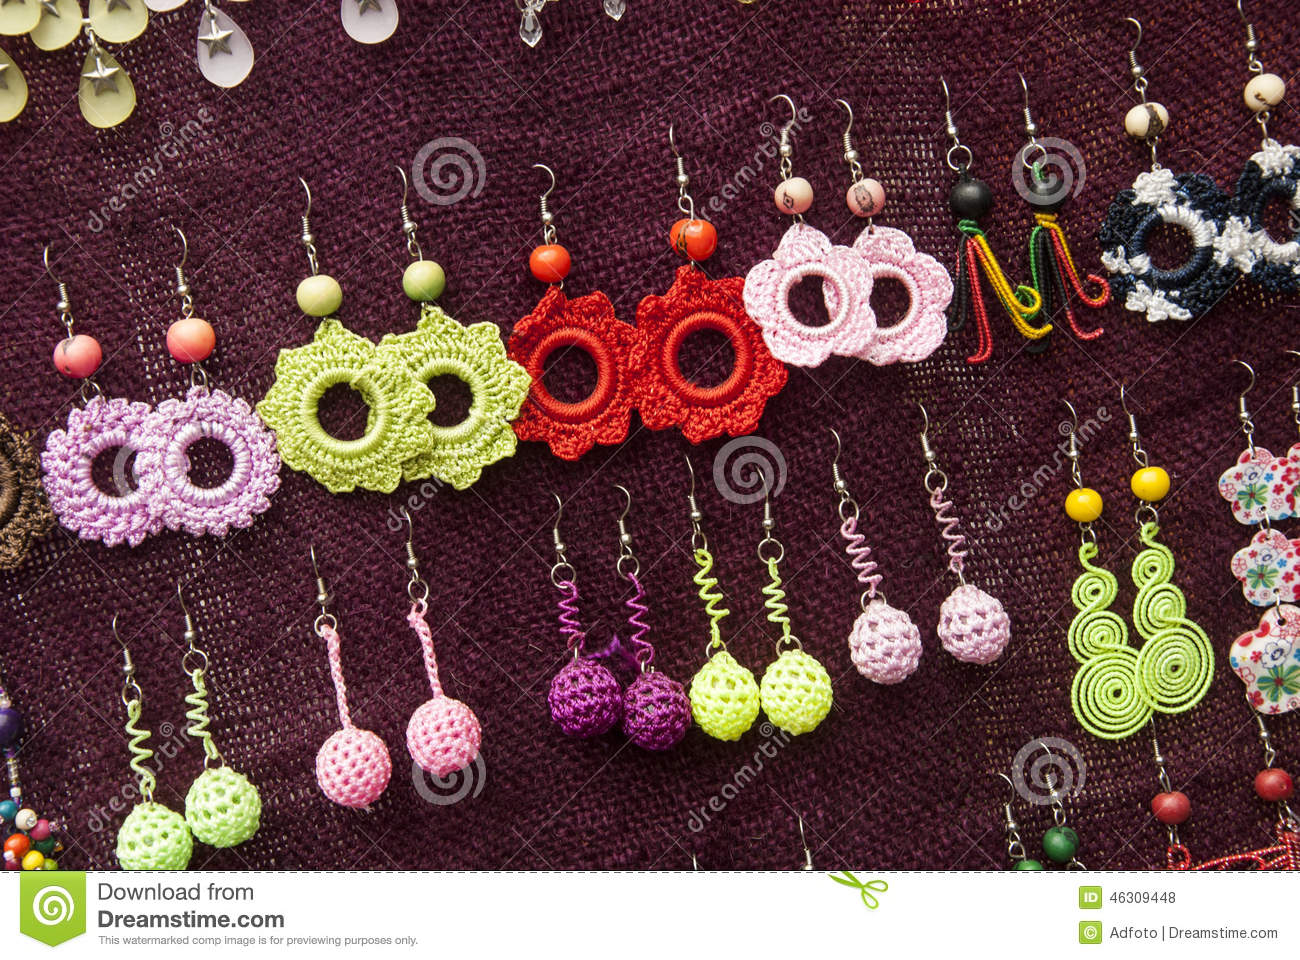 Fashion Crochet Earrings Patterns Stock Photo Image Of Knitting